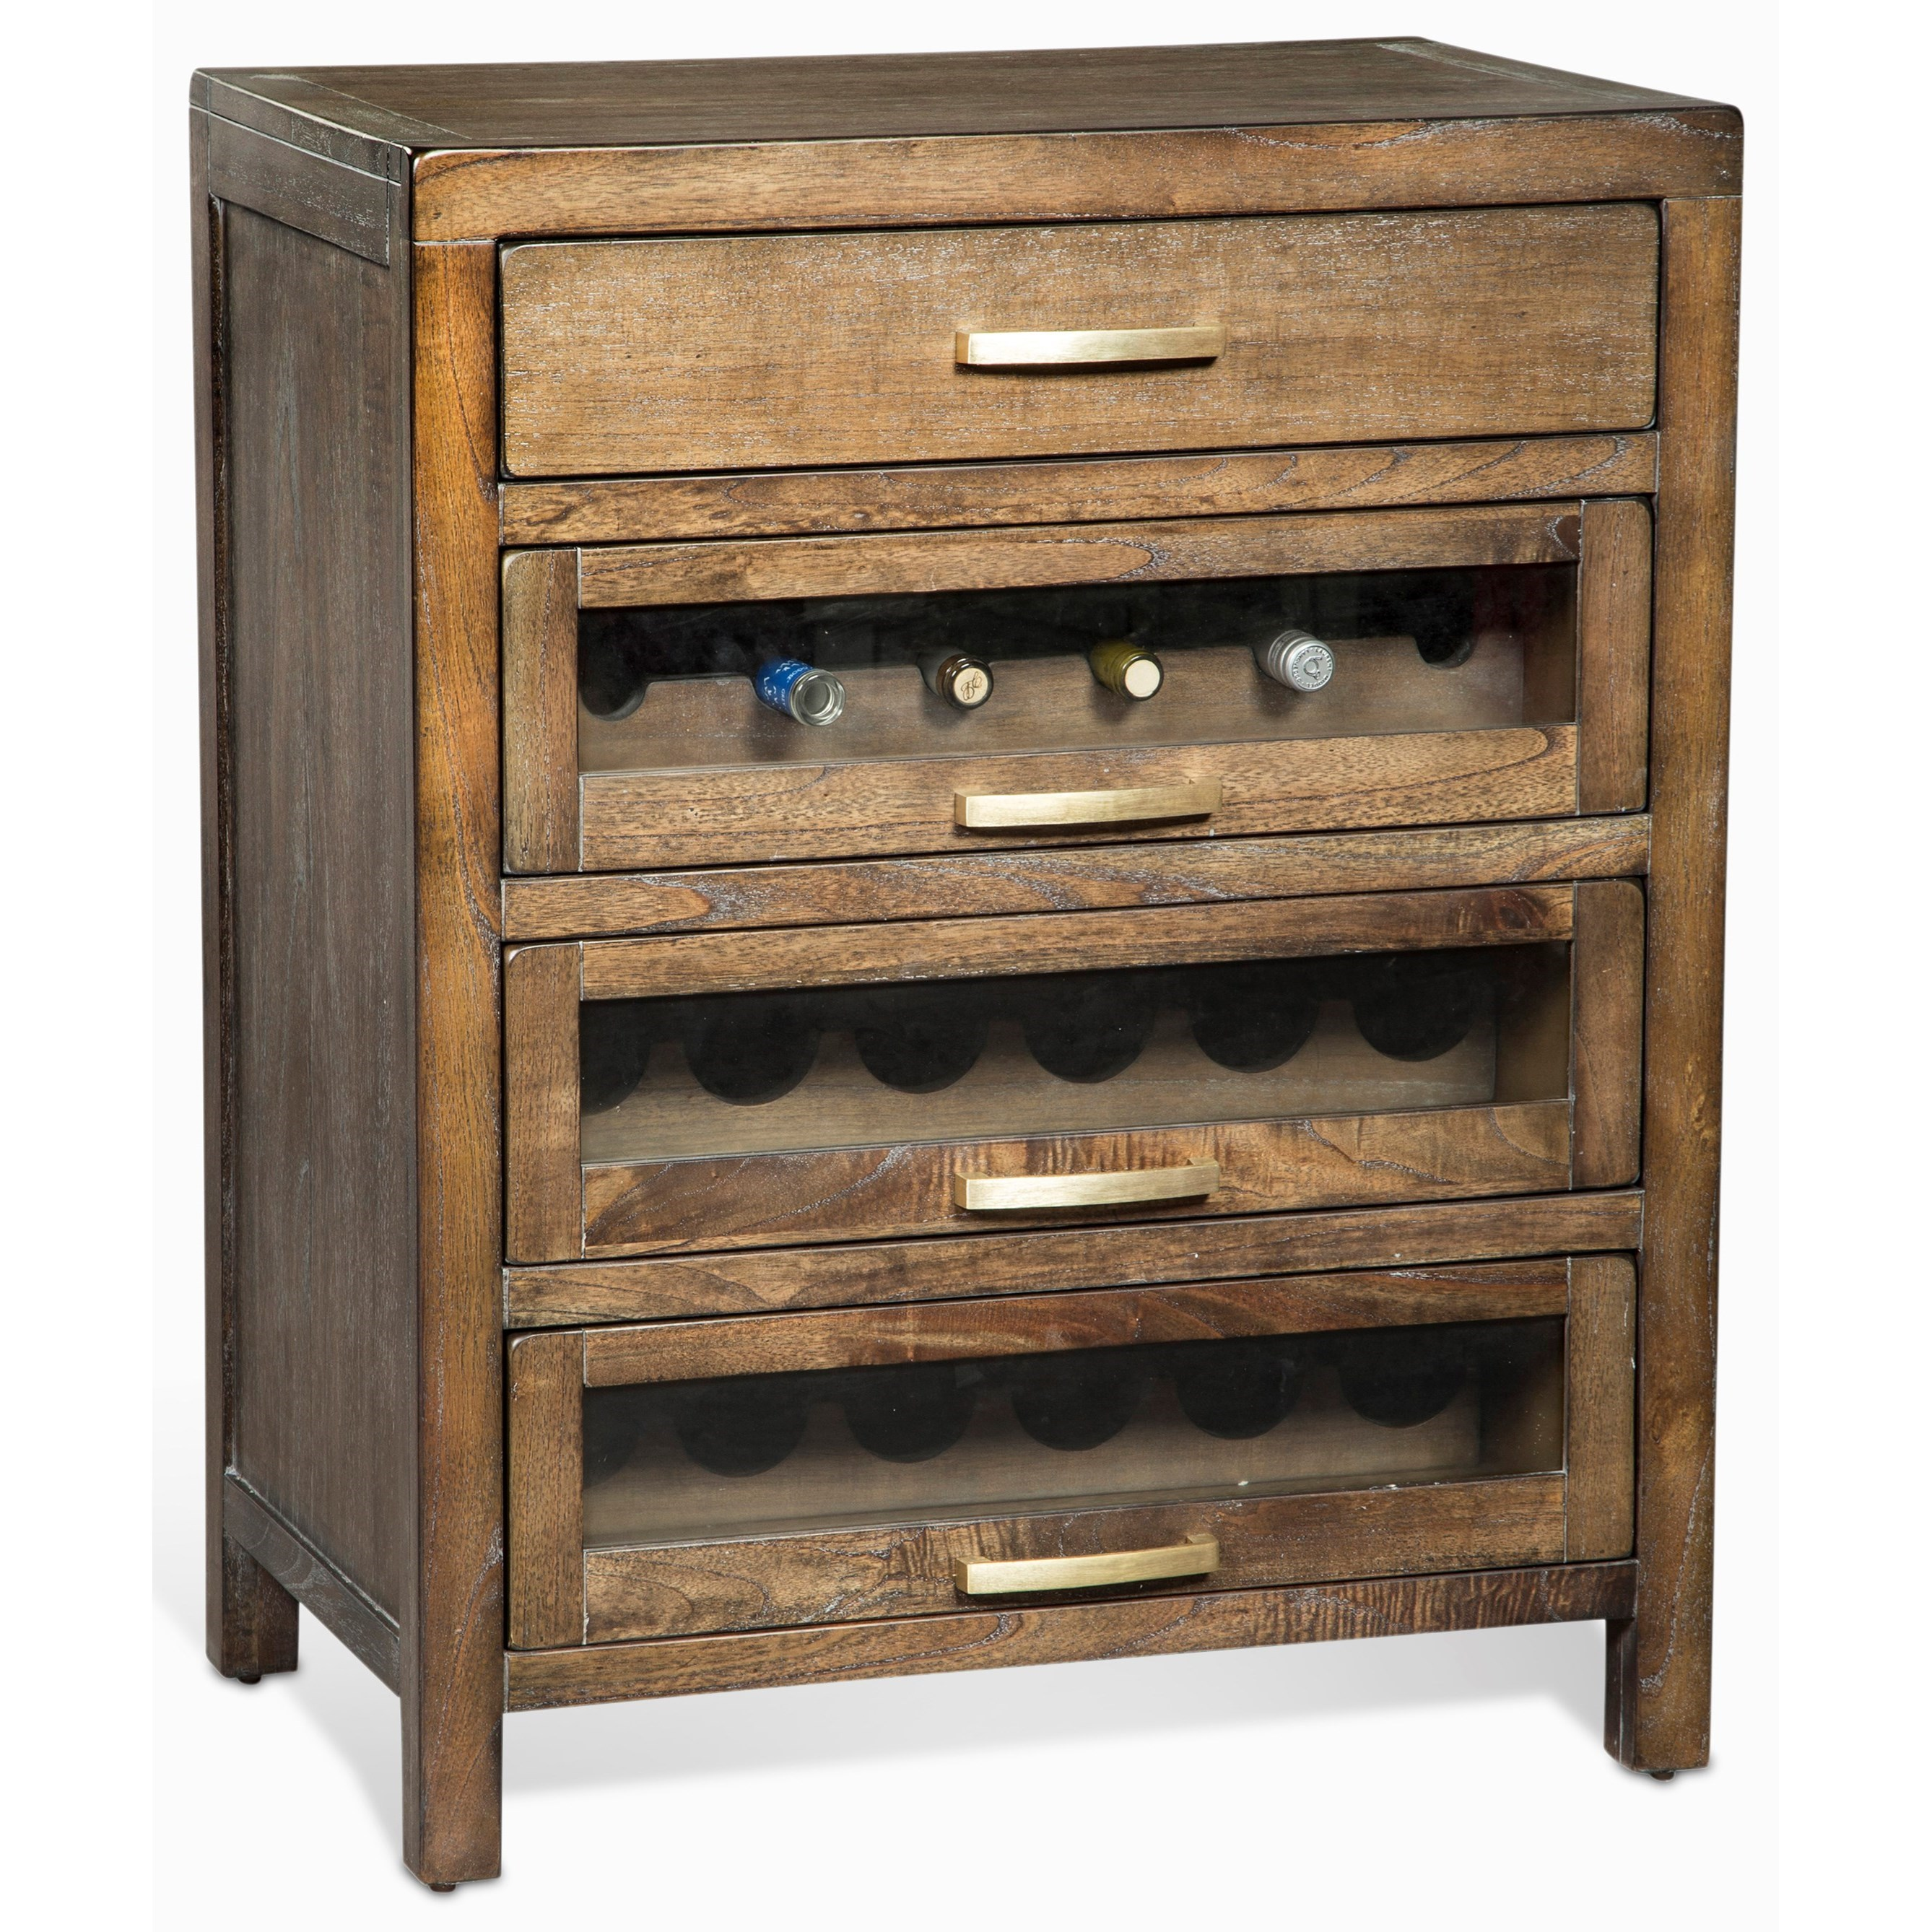 1990 Server by Sunny Designs at Home Furnishings Direct